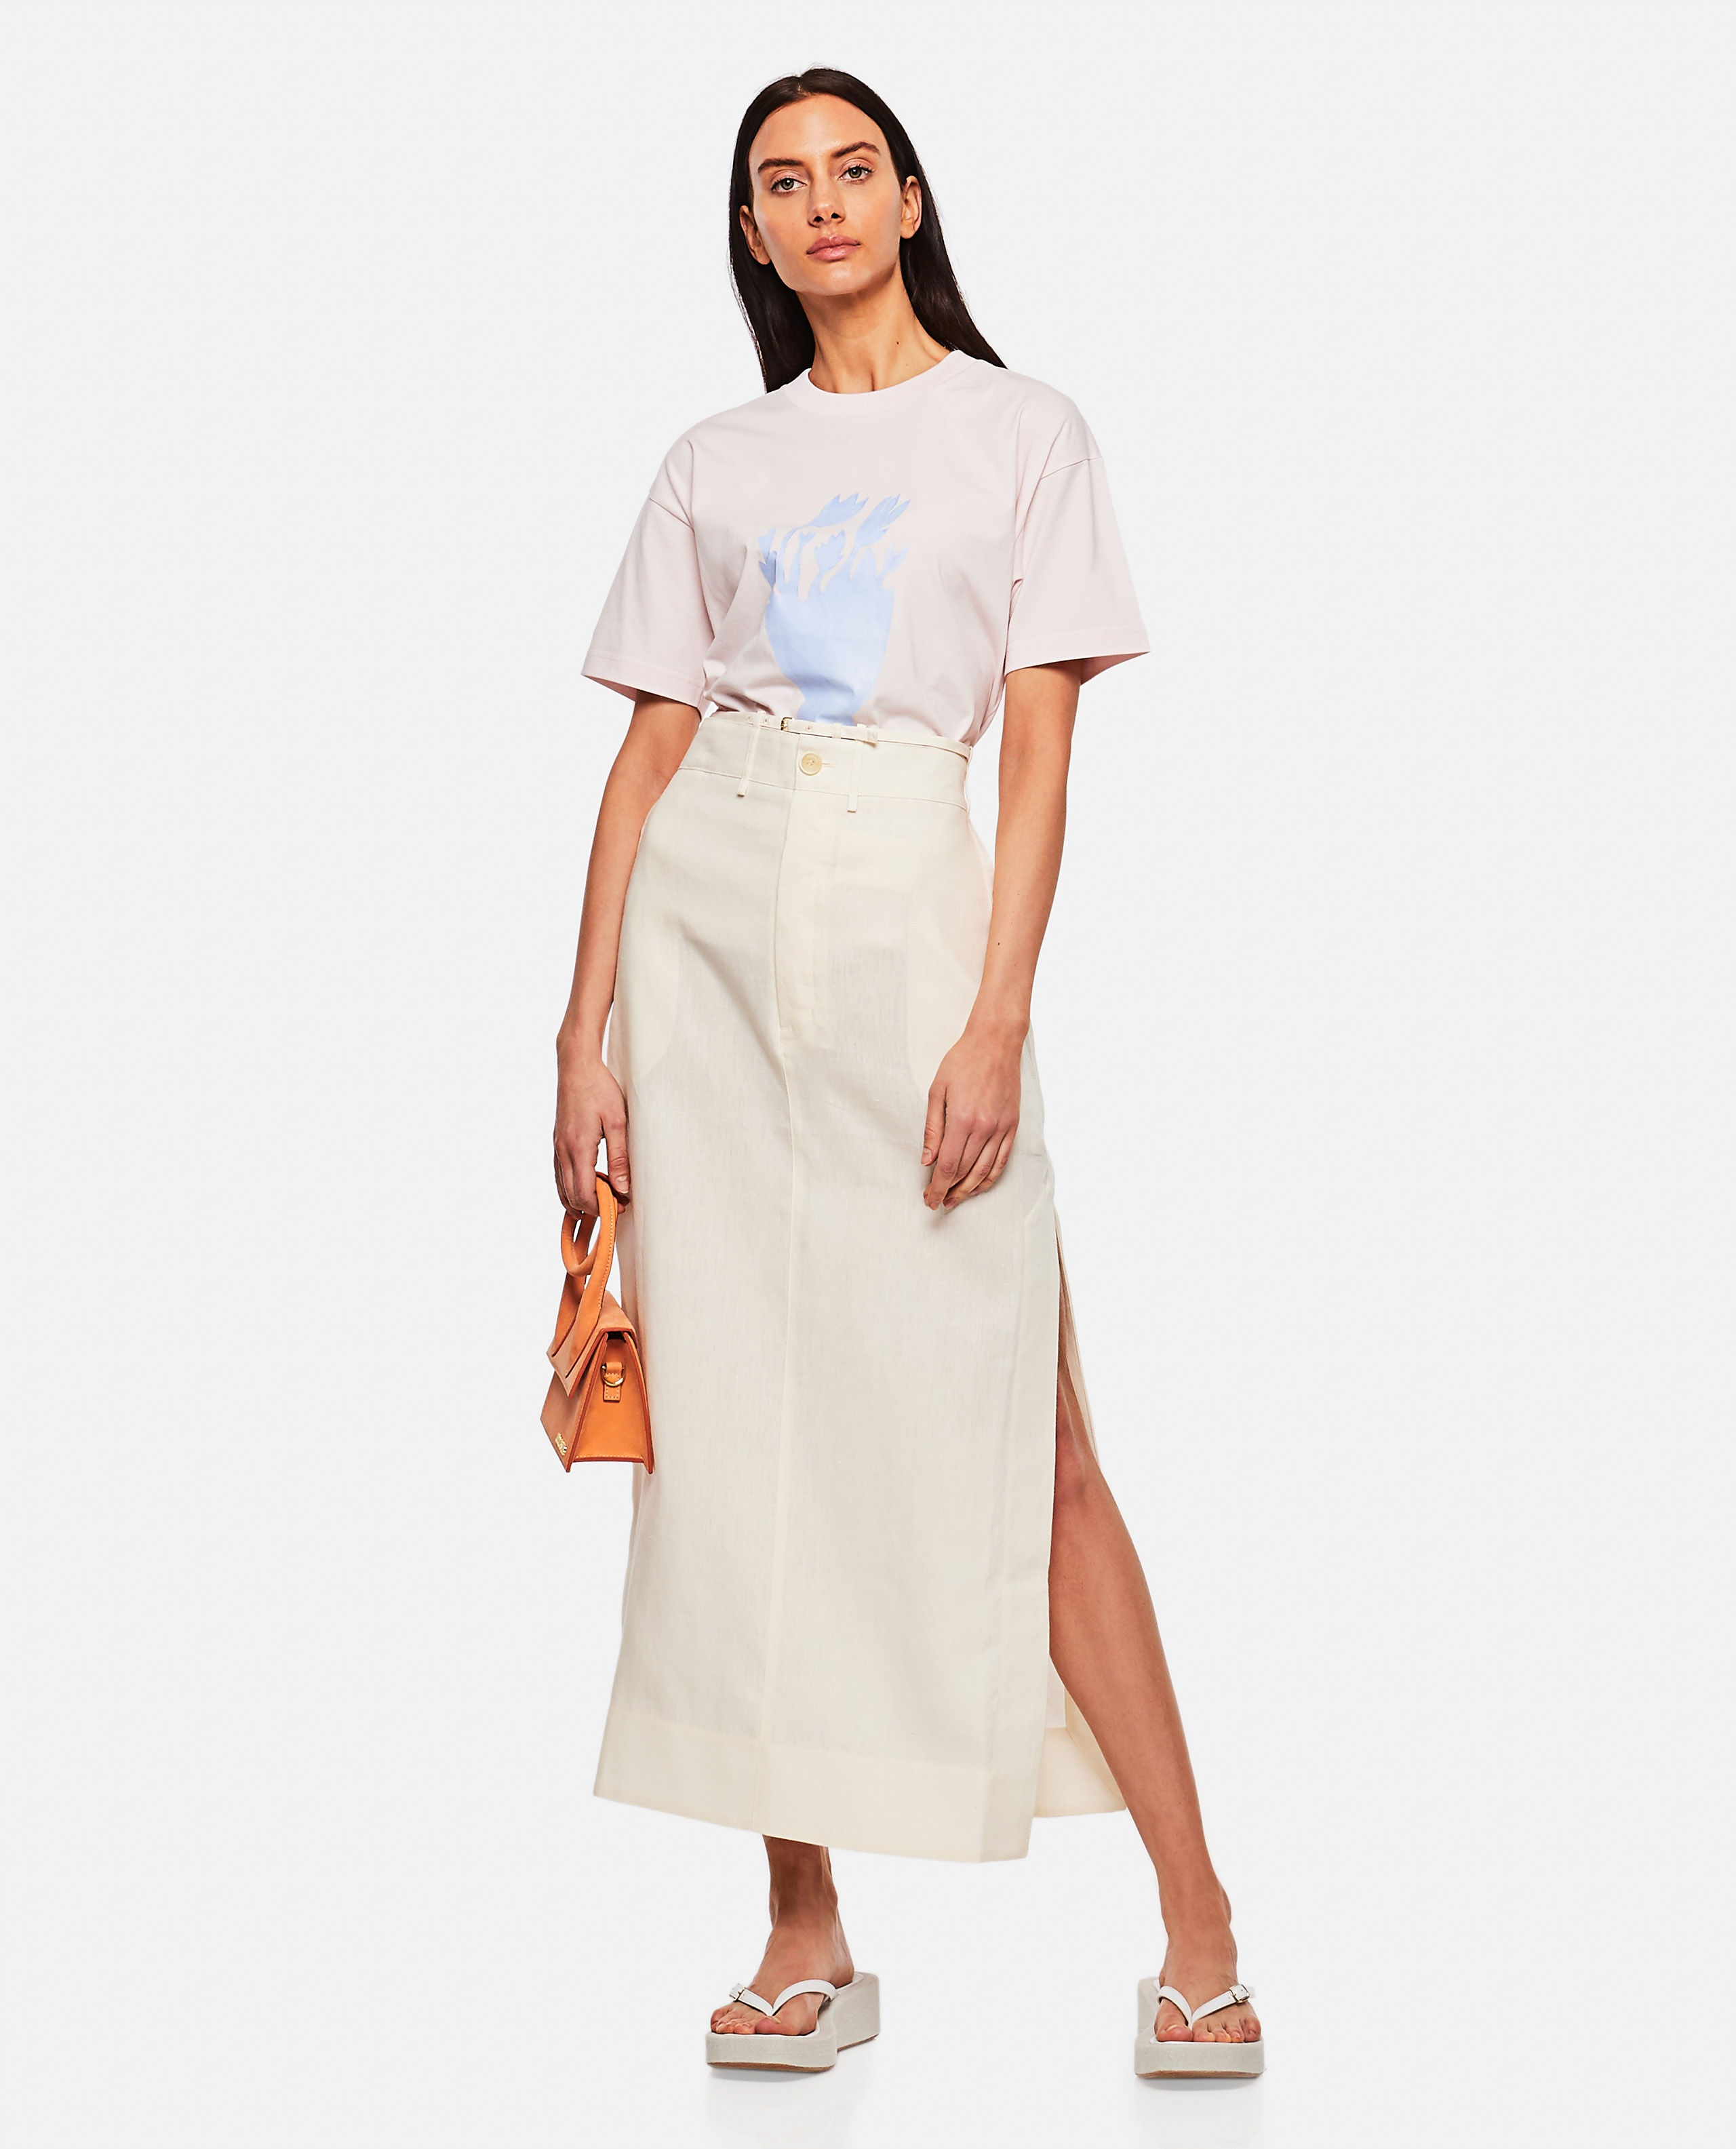 T-shirt in cotone con stampa Donna Jacquemus 000302340044402 2